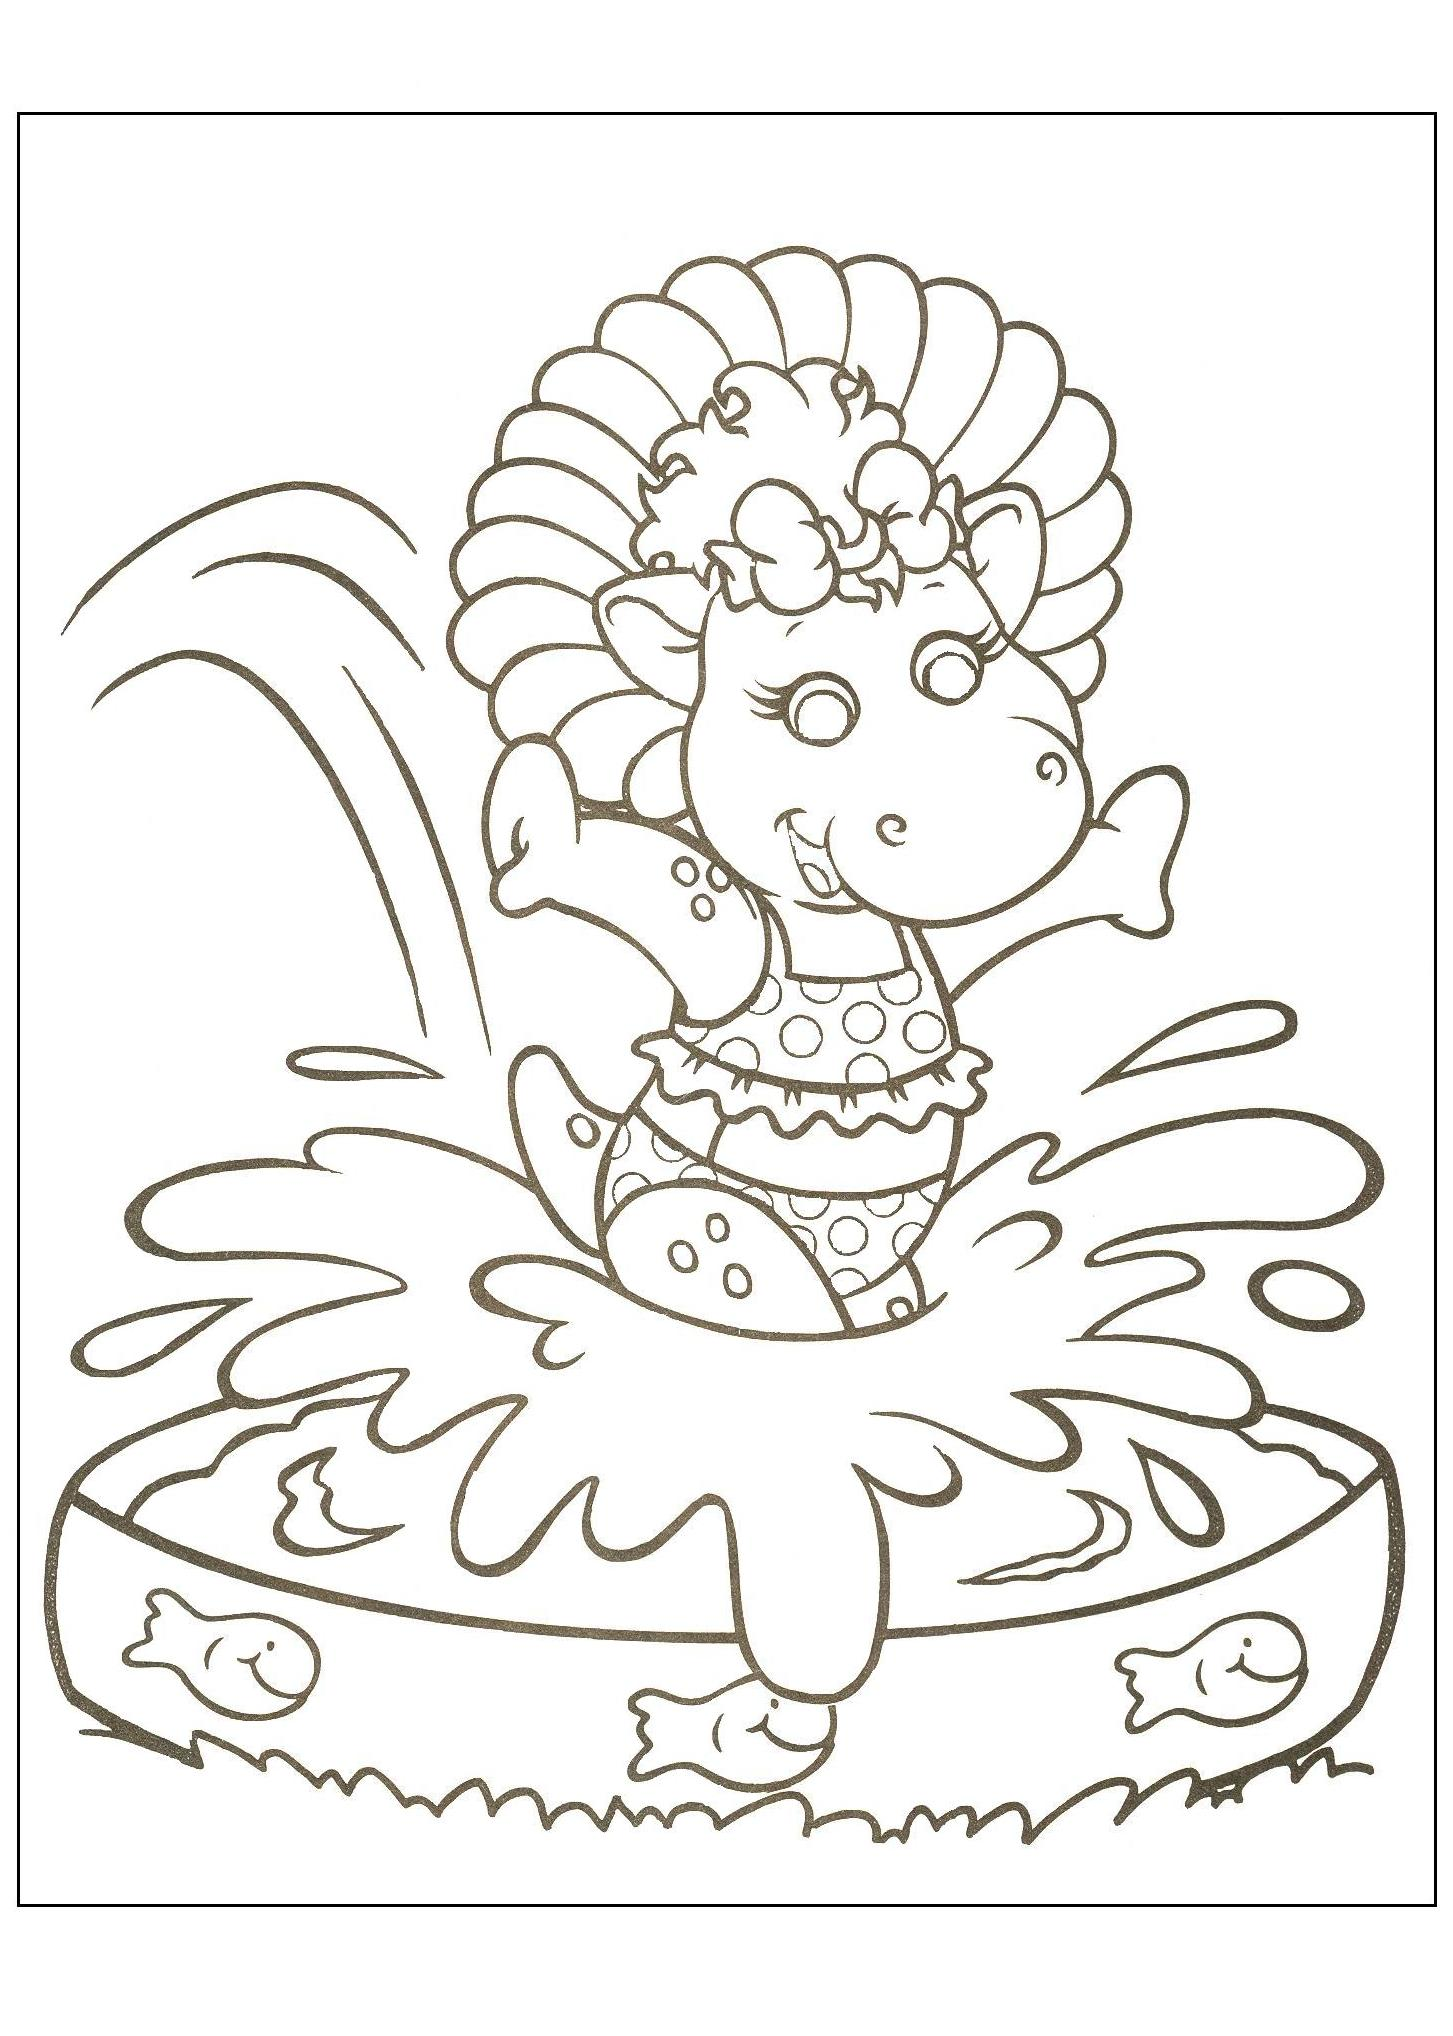 Baby bop coloring pages download